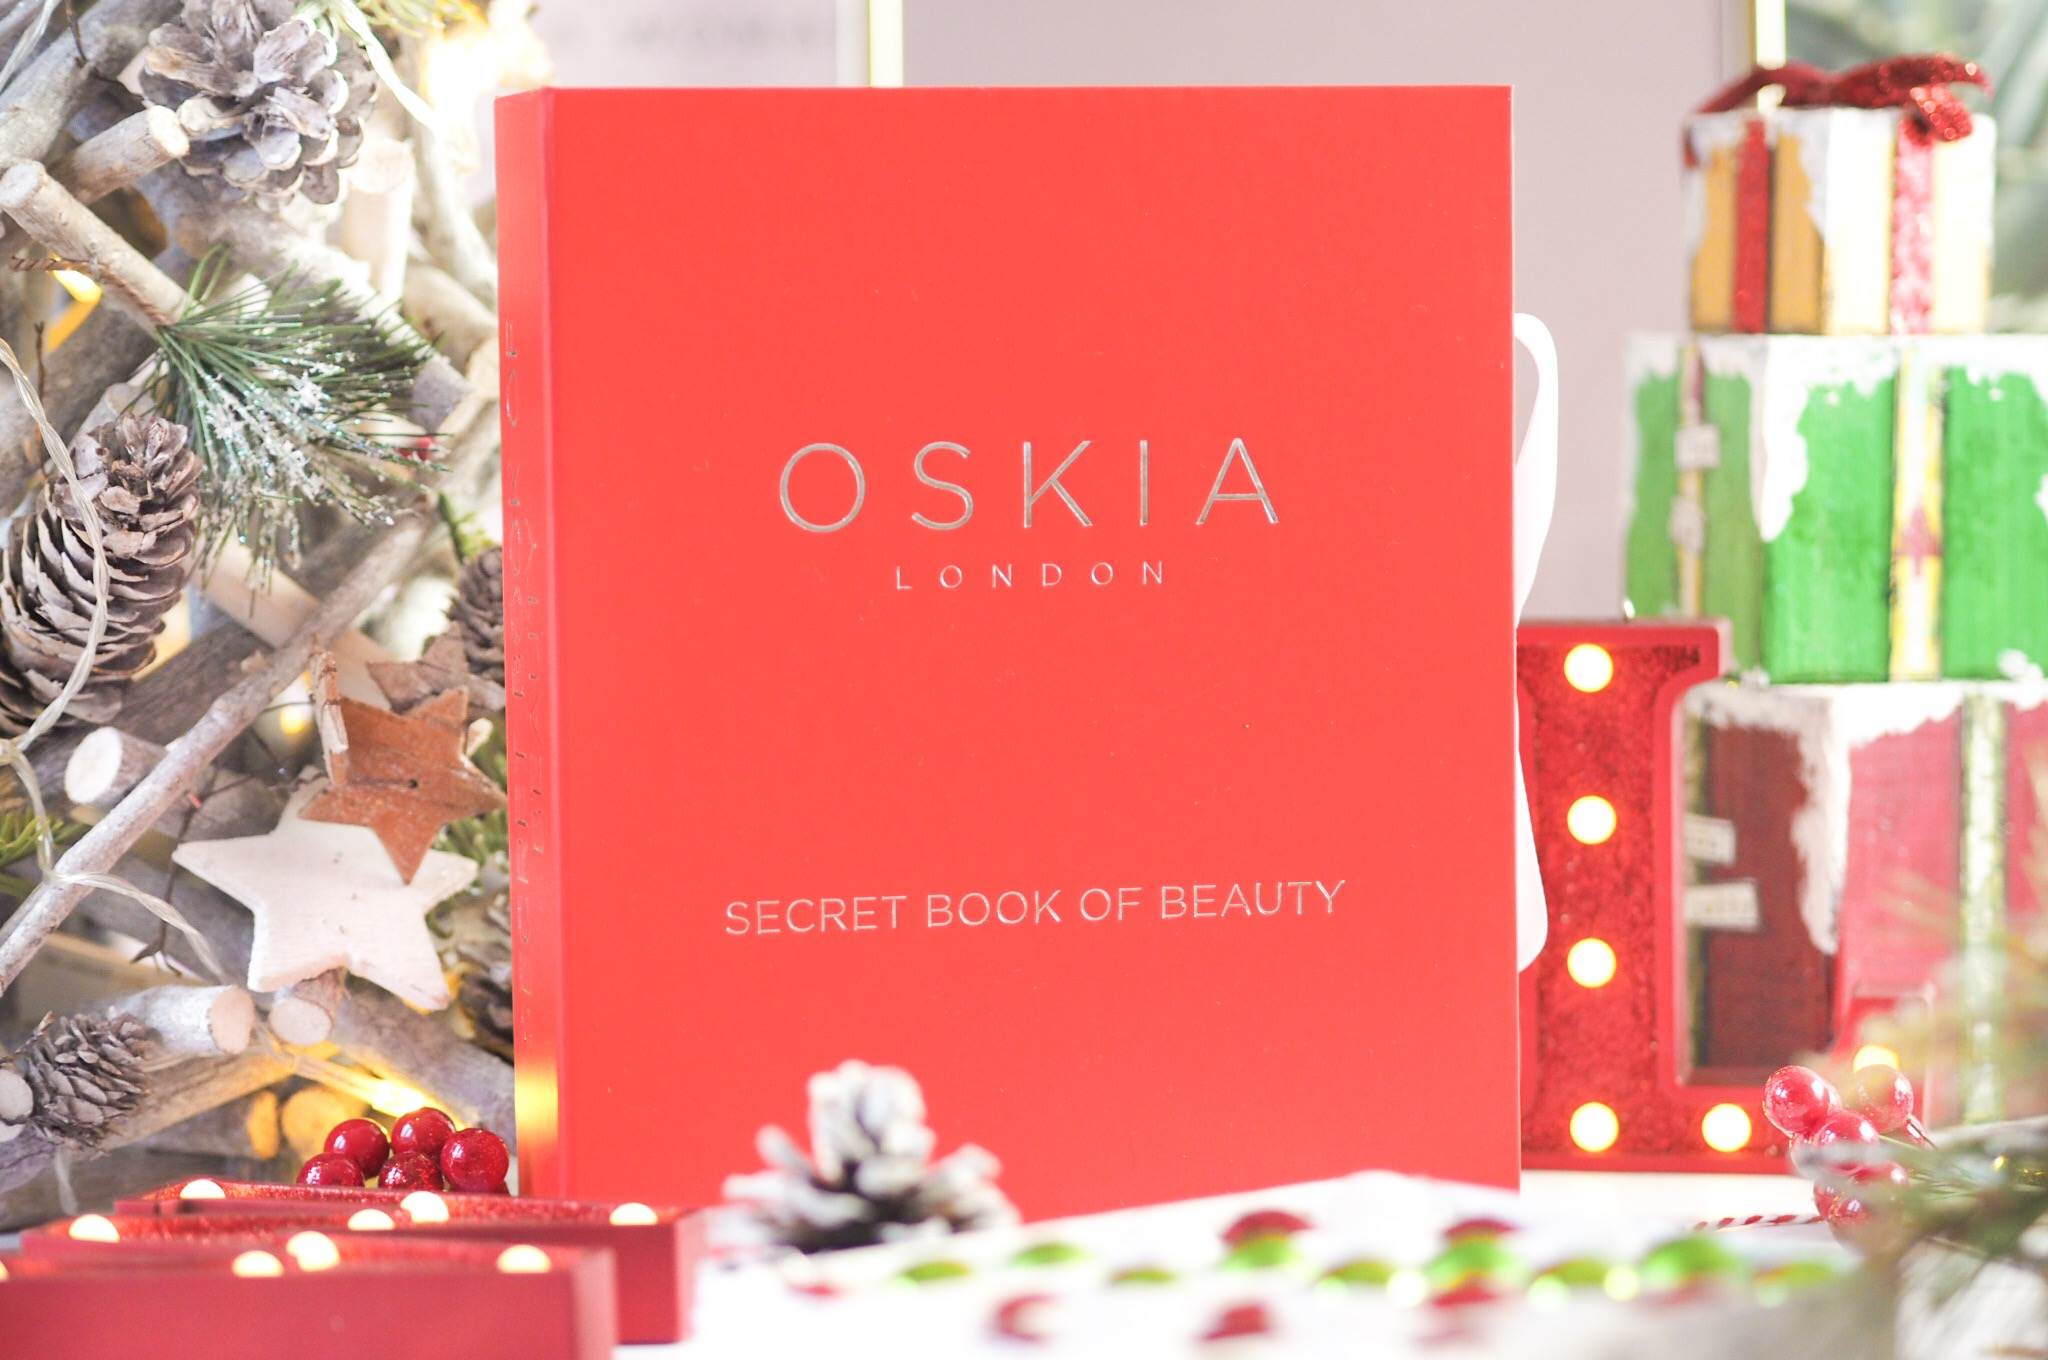 Oskia Secret Book of Beauty